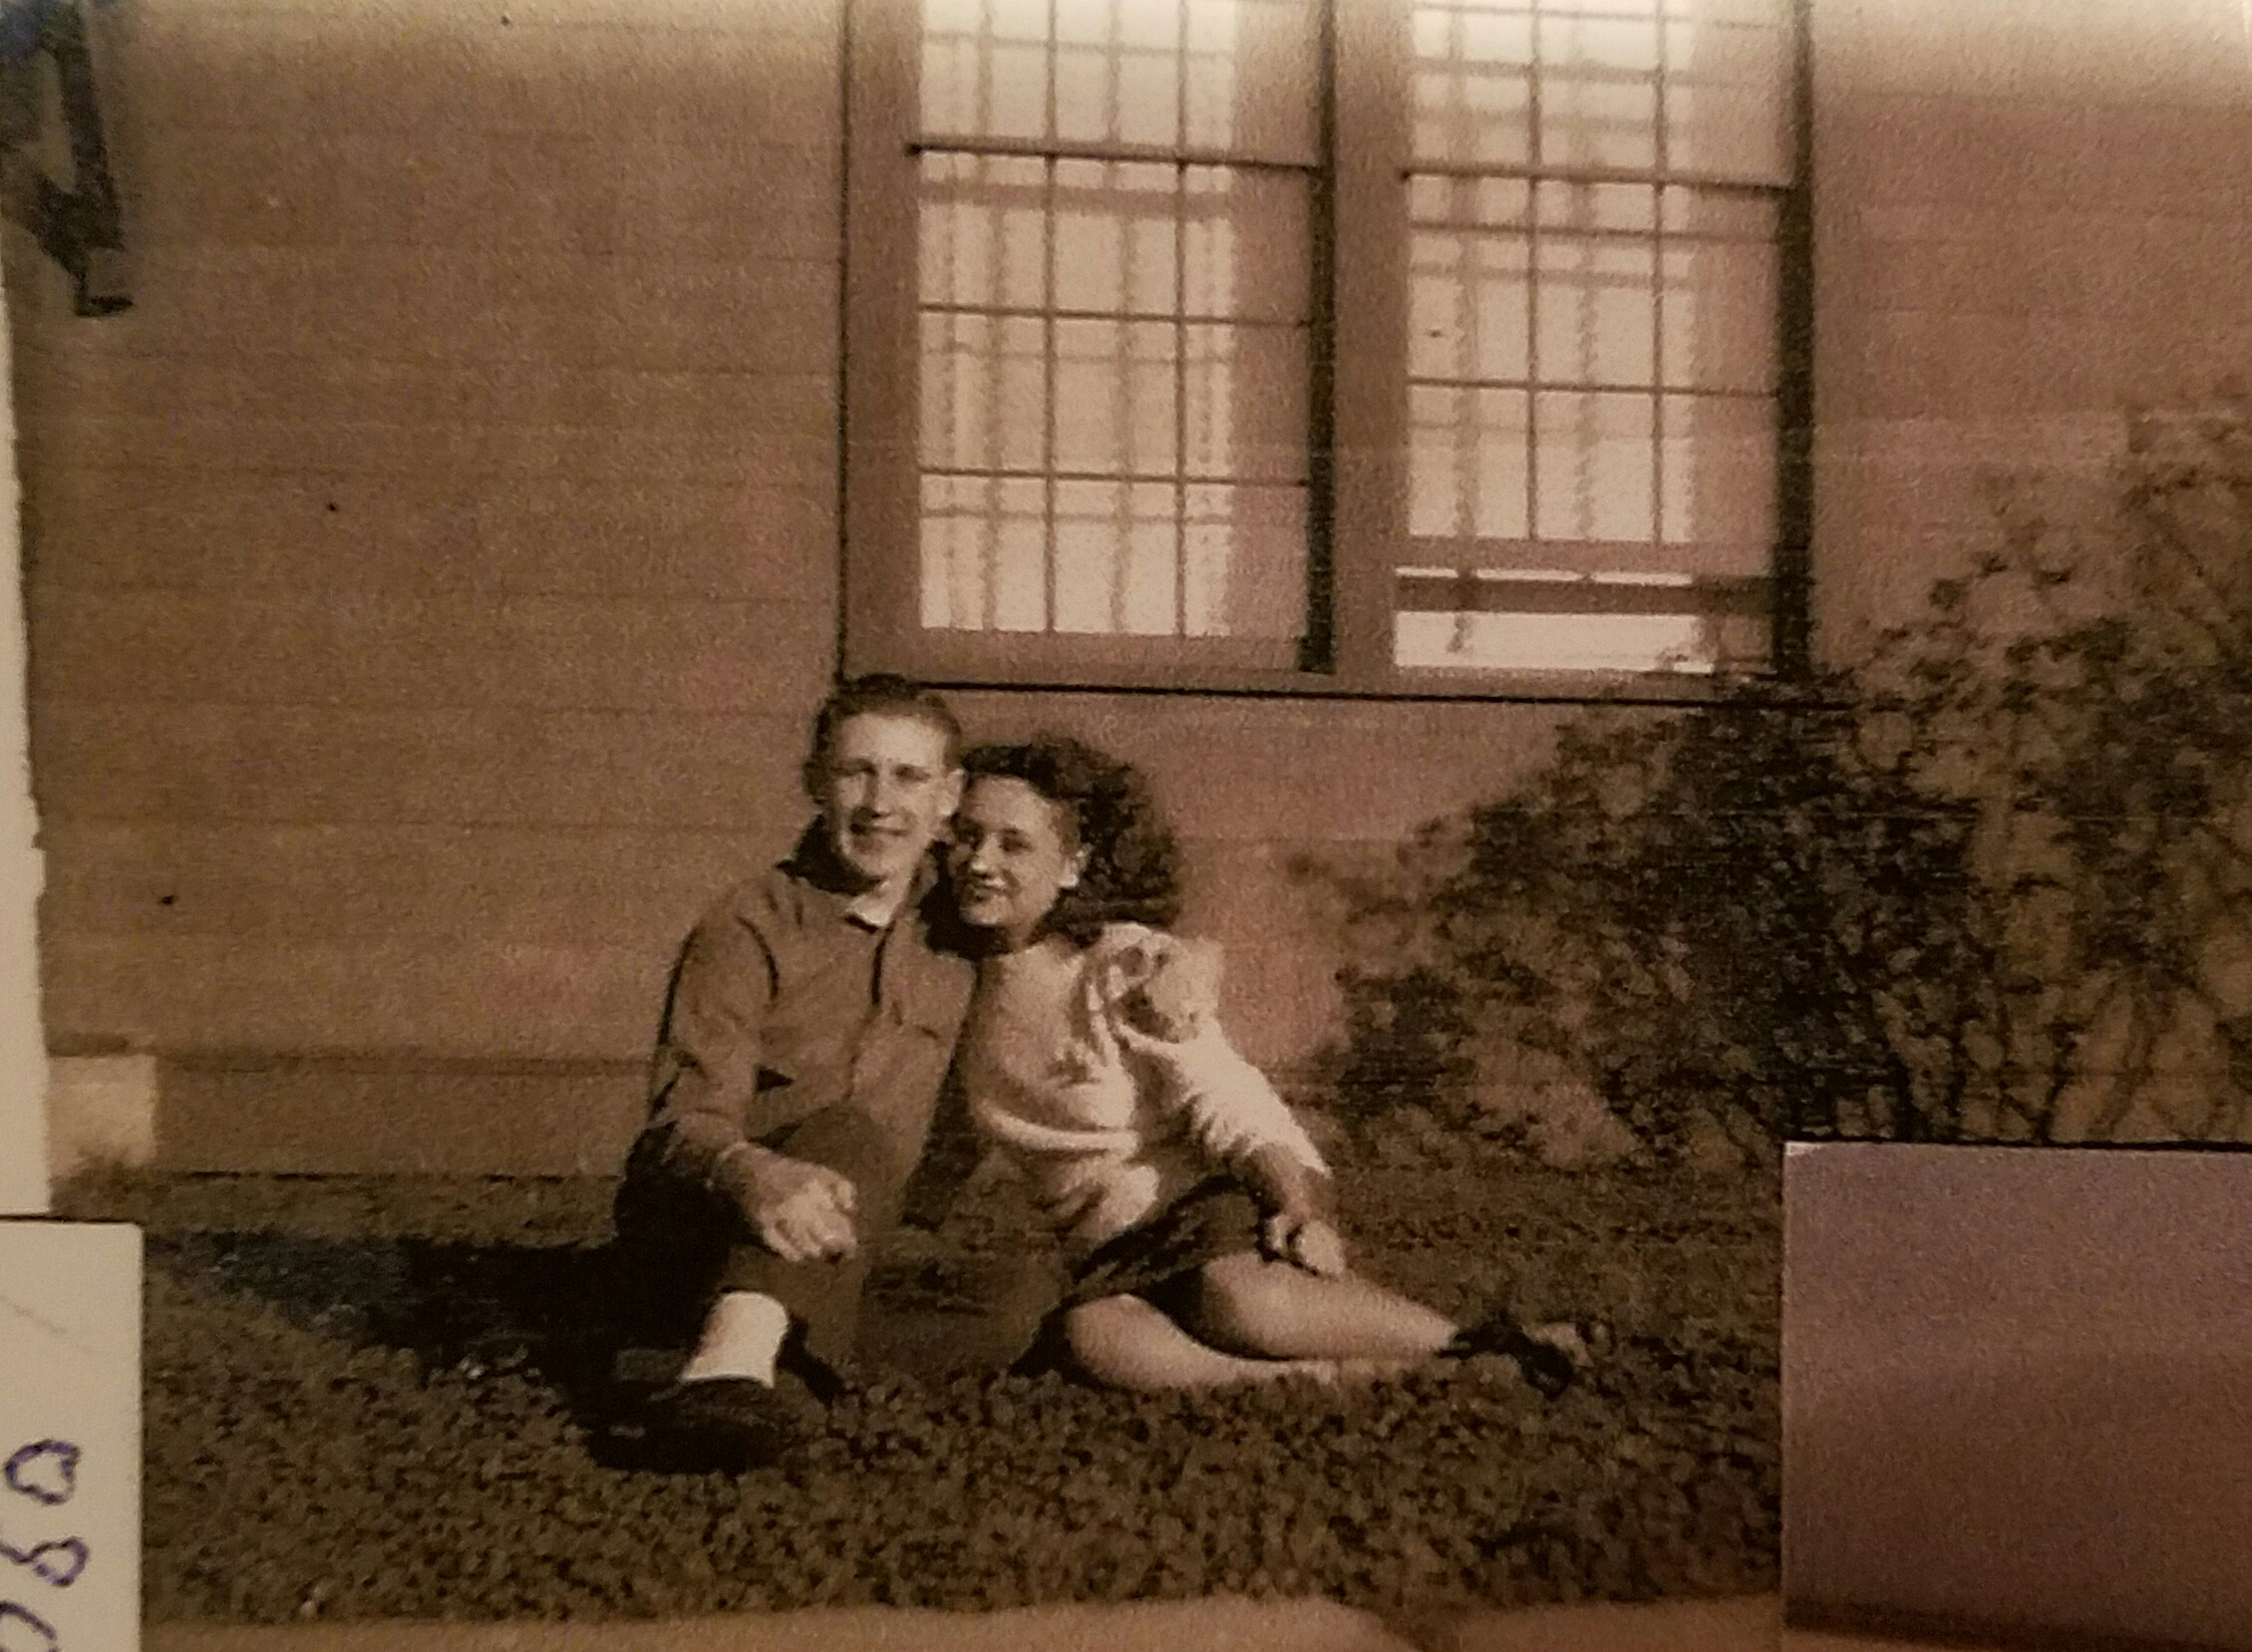 Reunited again! This photo of Bill and Phyllis was taken at the hospital where Bill was recuperating from wounds he received on Iwo Jima.